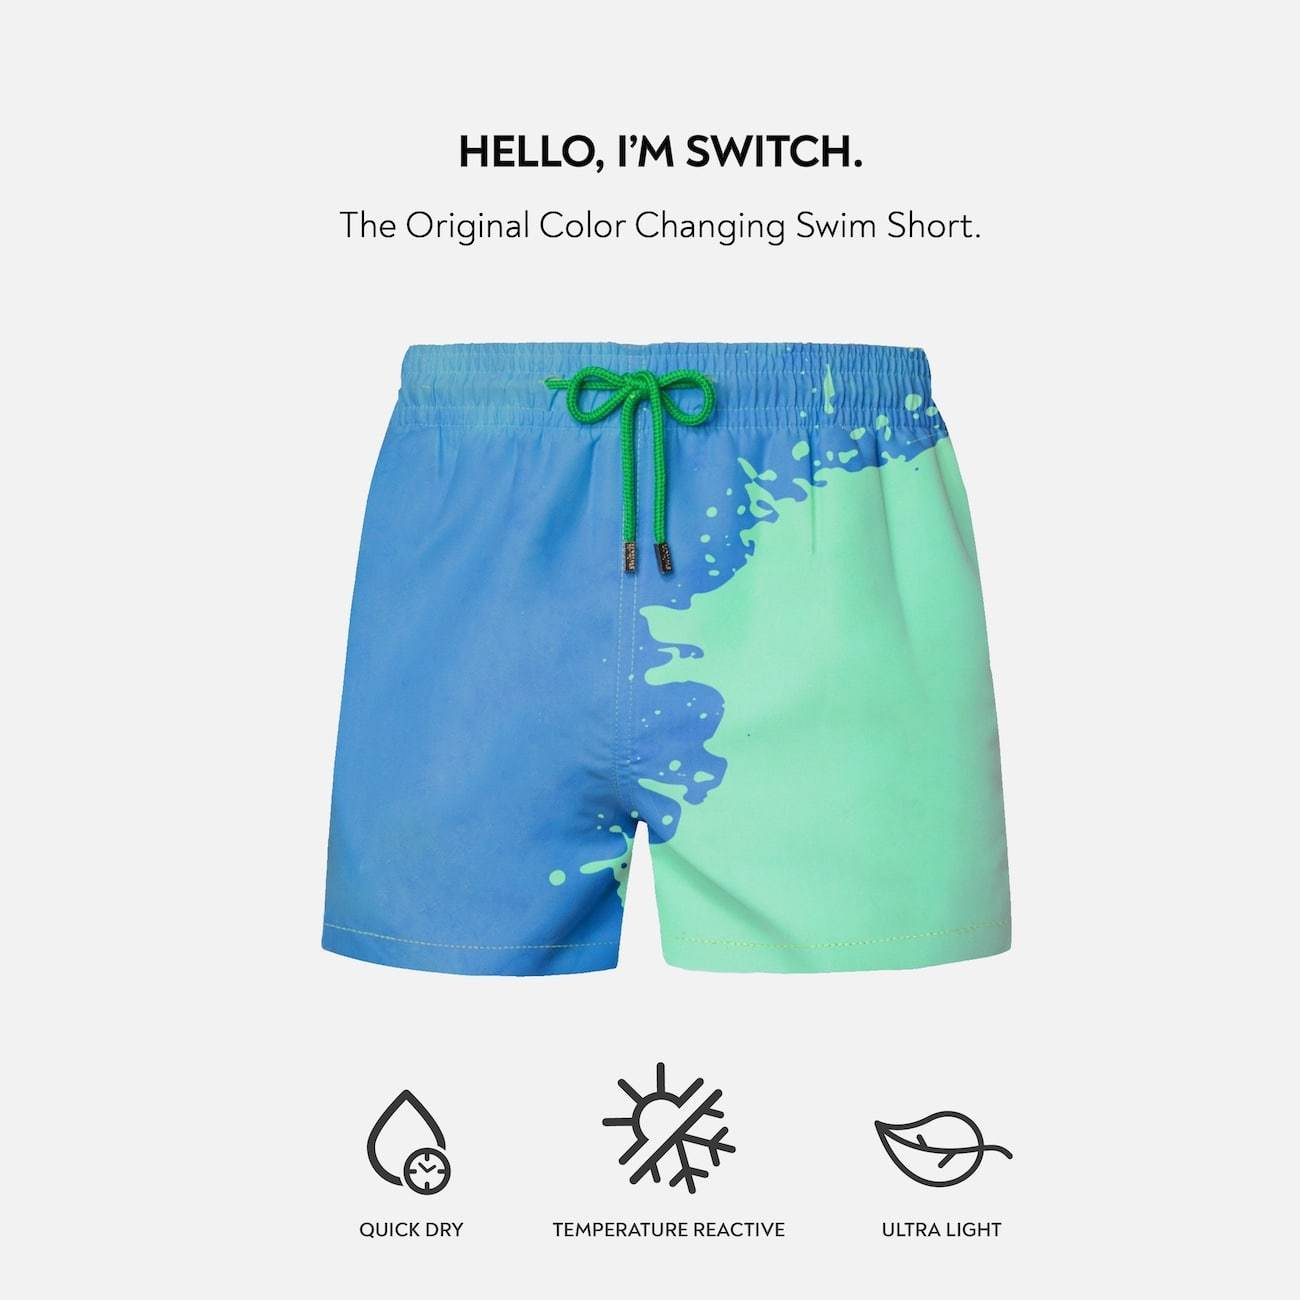 MAN SWITCH COLOR CHANGING SWIM TRUNKS